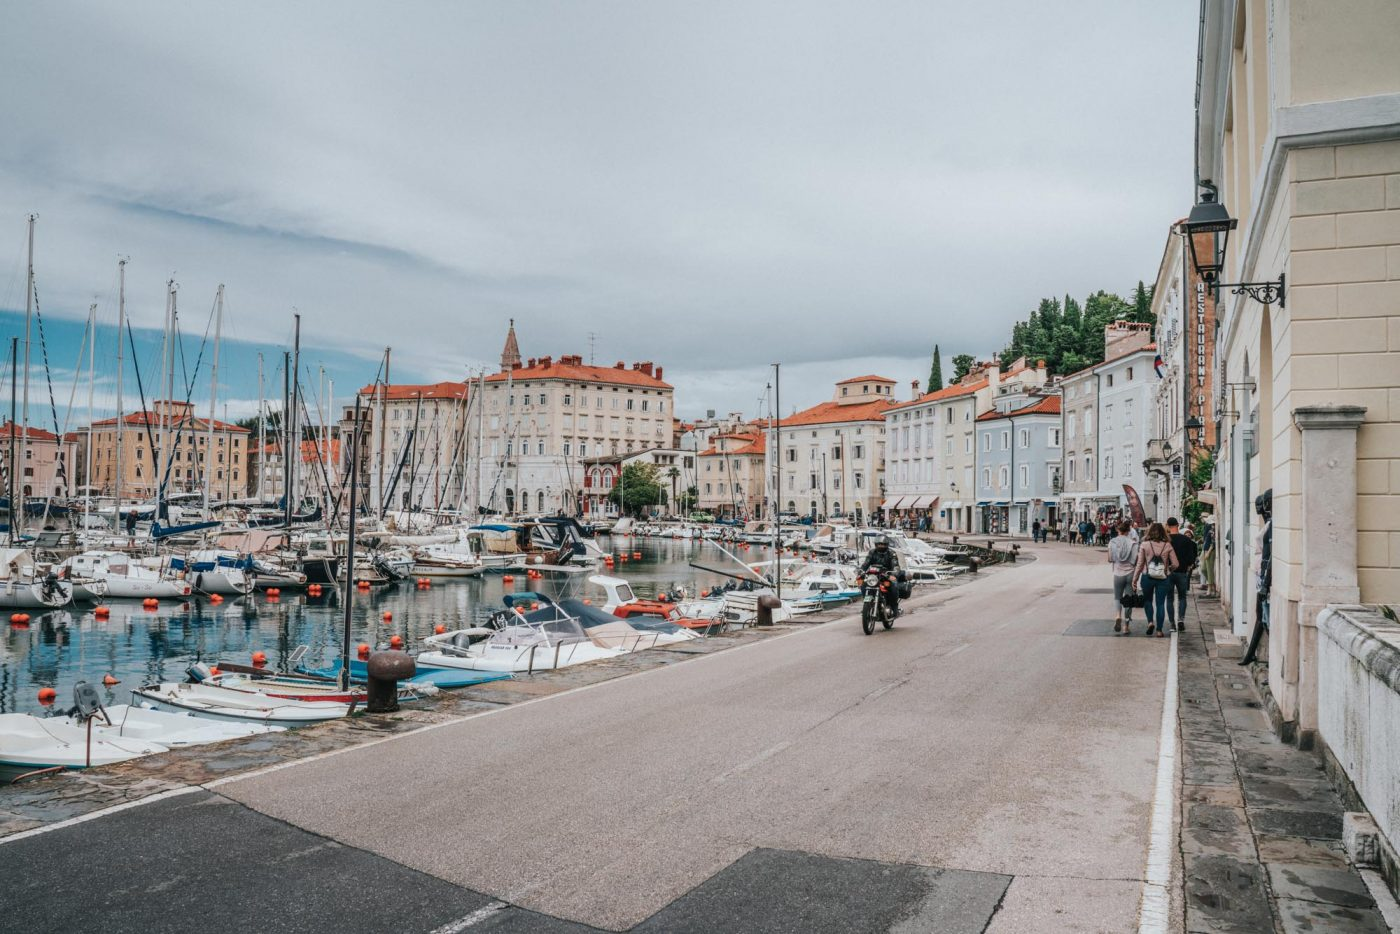 Waterfront of Piran Slovenia filled with boats